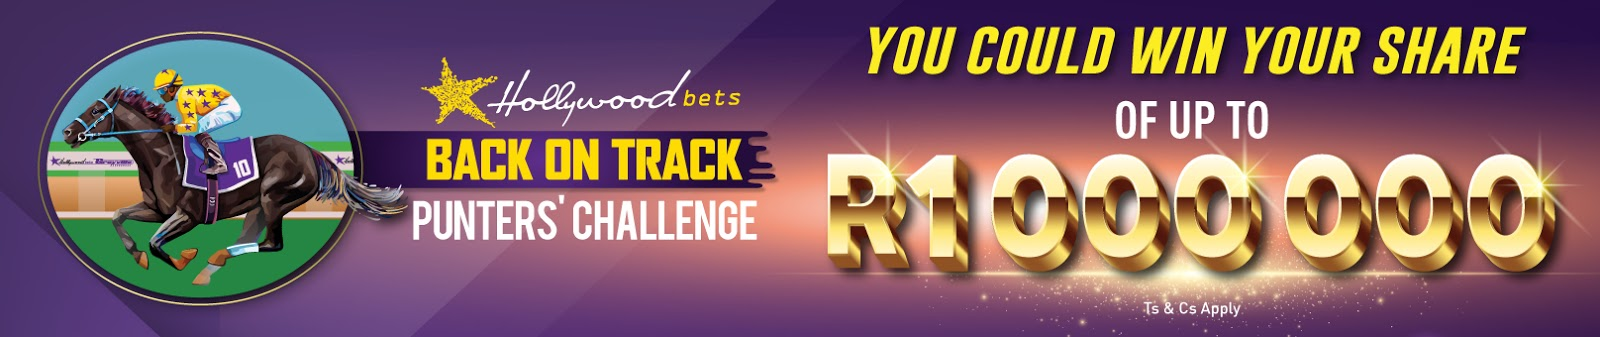 Hollywoodbets Back on Track Punters' Challenge